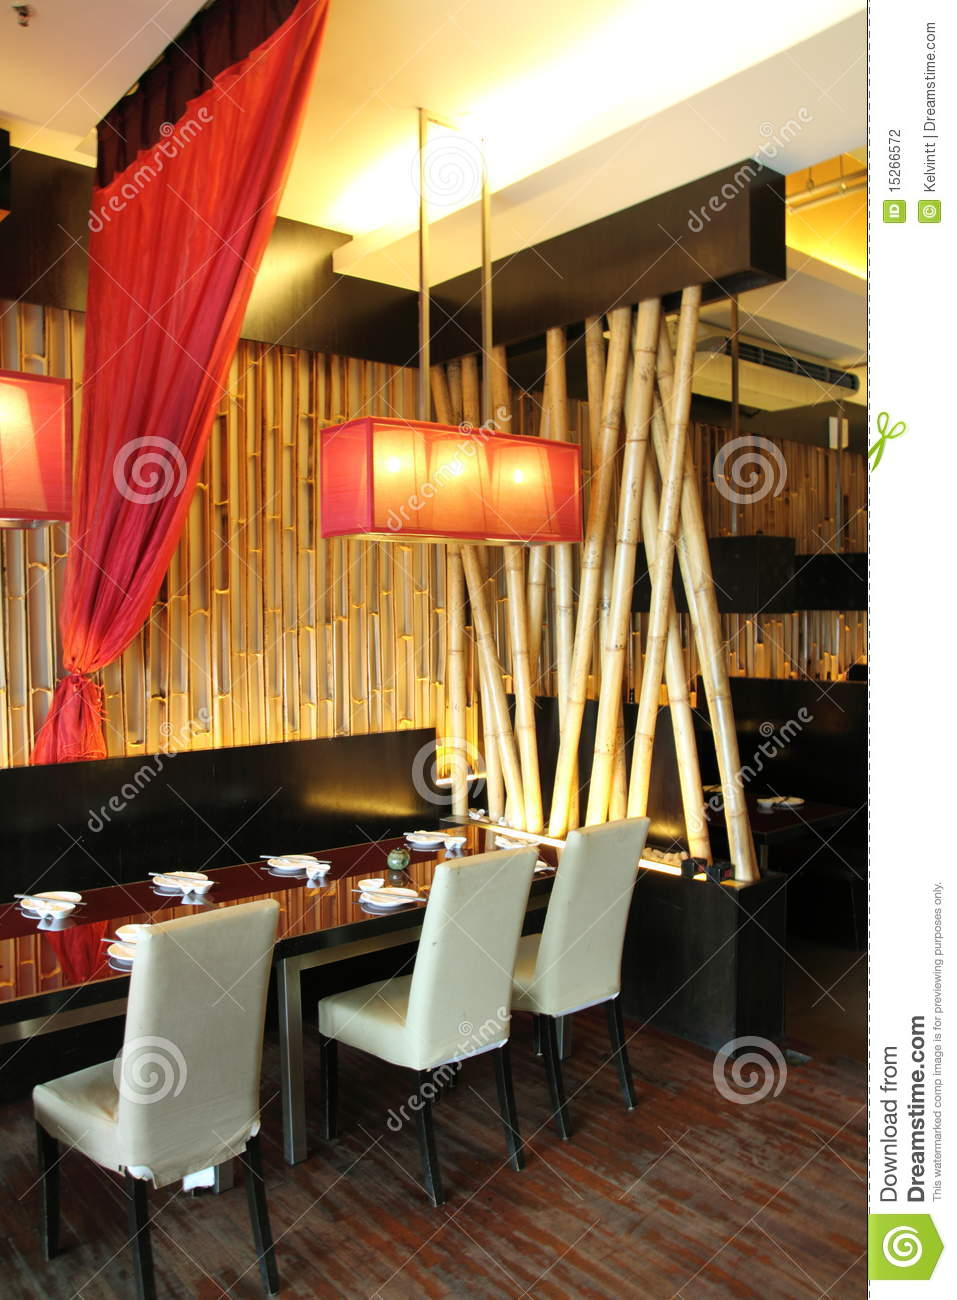 chair with light design for drawing room restaurant interior stock photography - image: 15266572